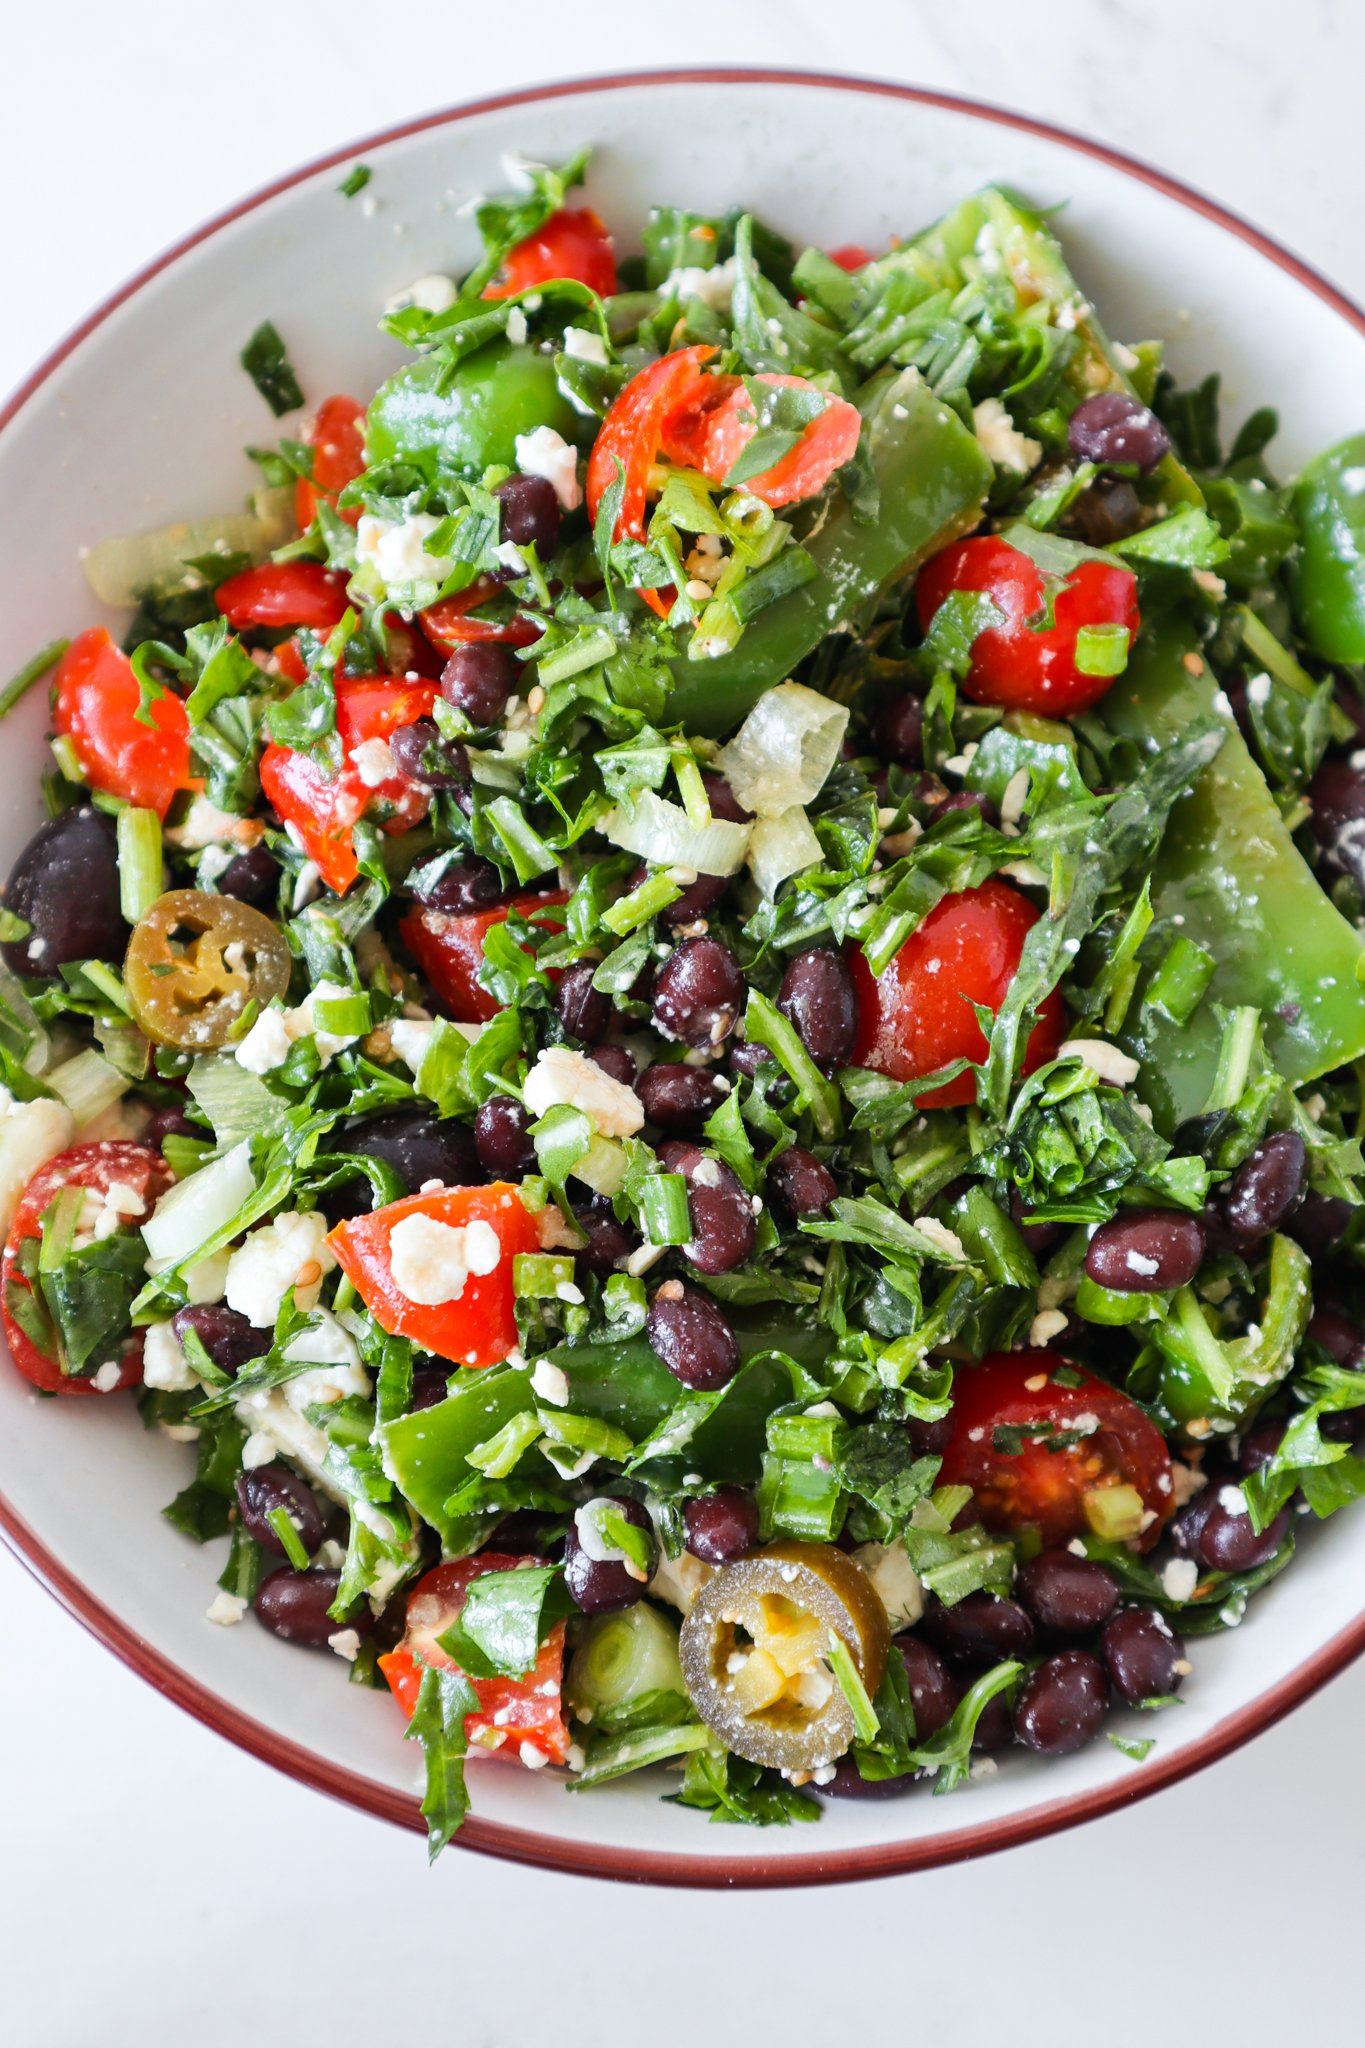 Mediterranean Black bean salad with herbs and feta: the perfect vegetarian side dish recipe to go with lunch or dinner! This easy black bean salad recipe is ready in about 10 minutes!